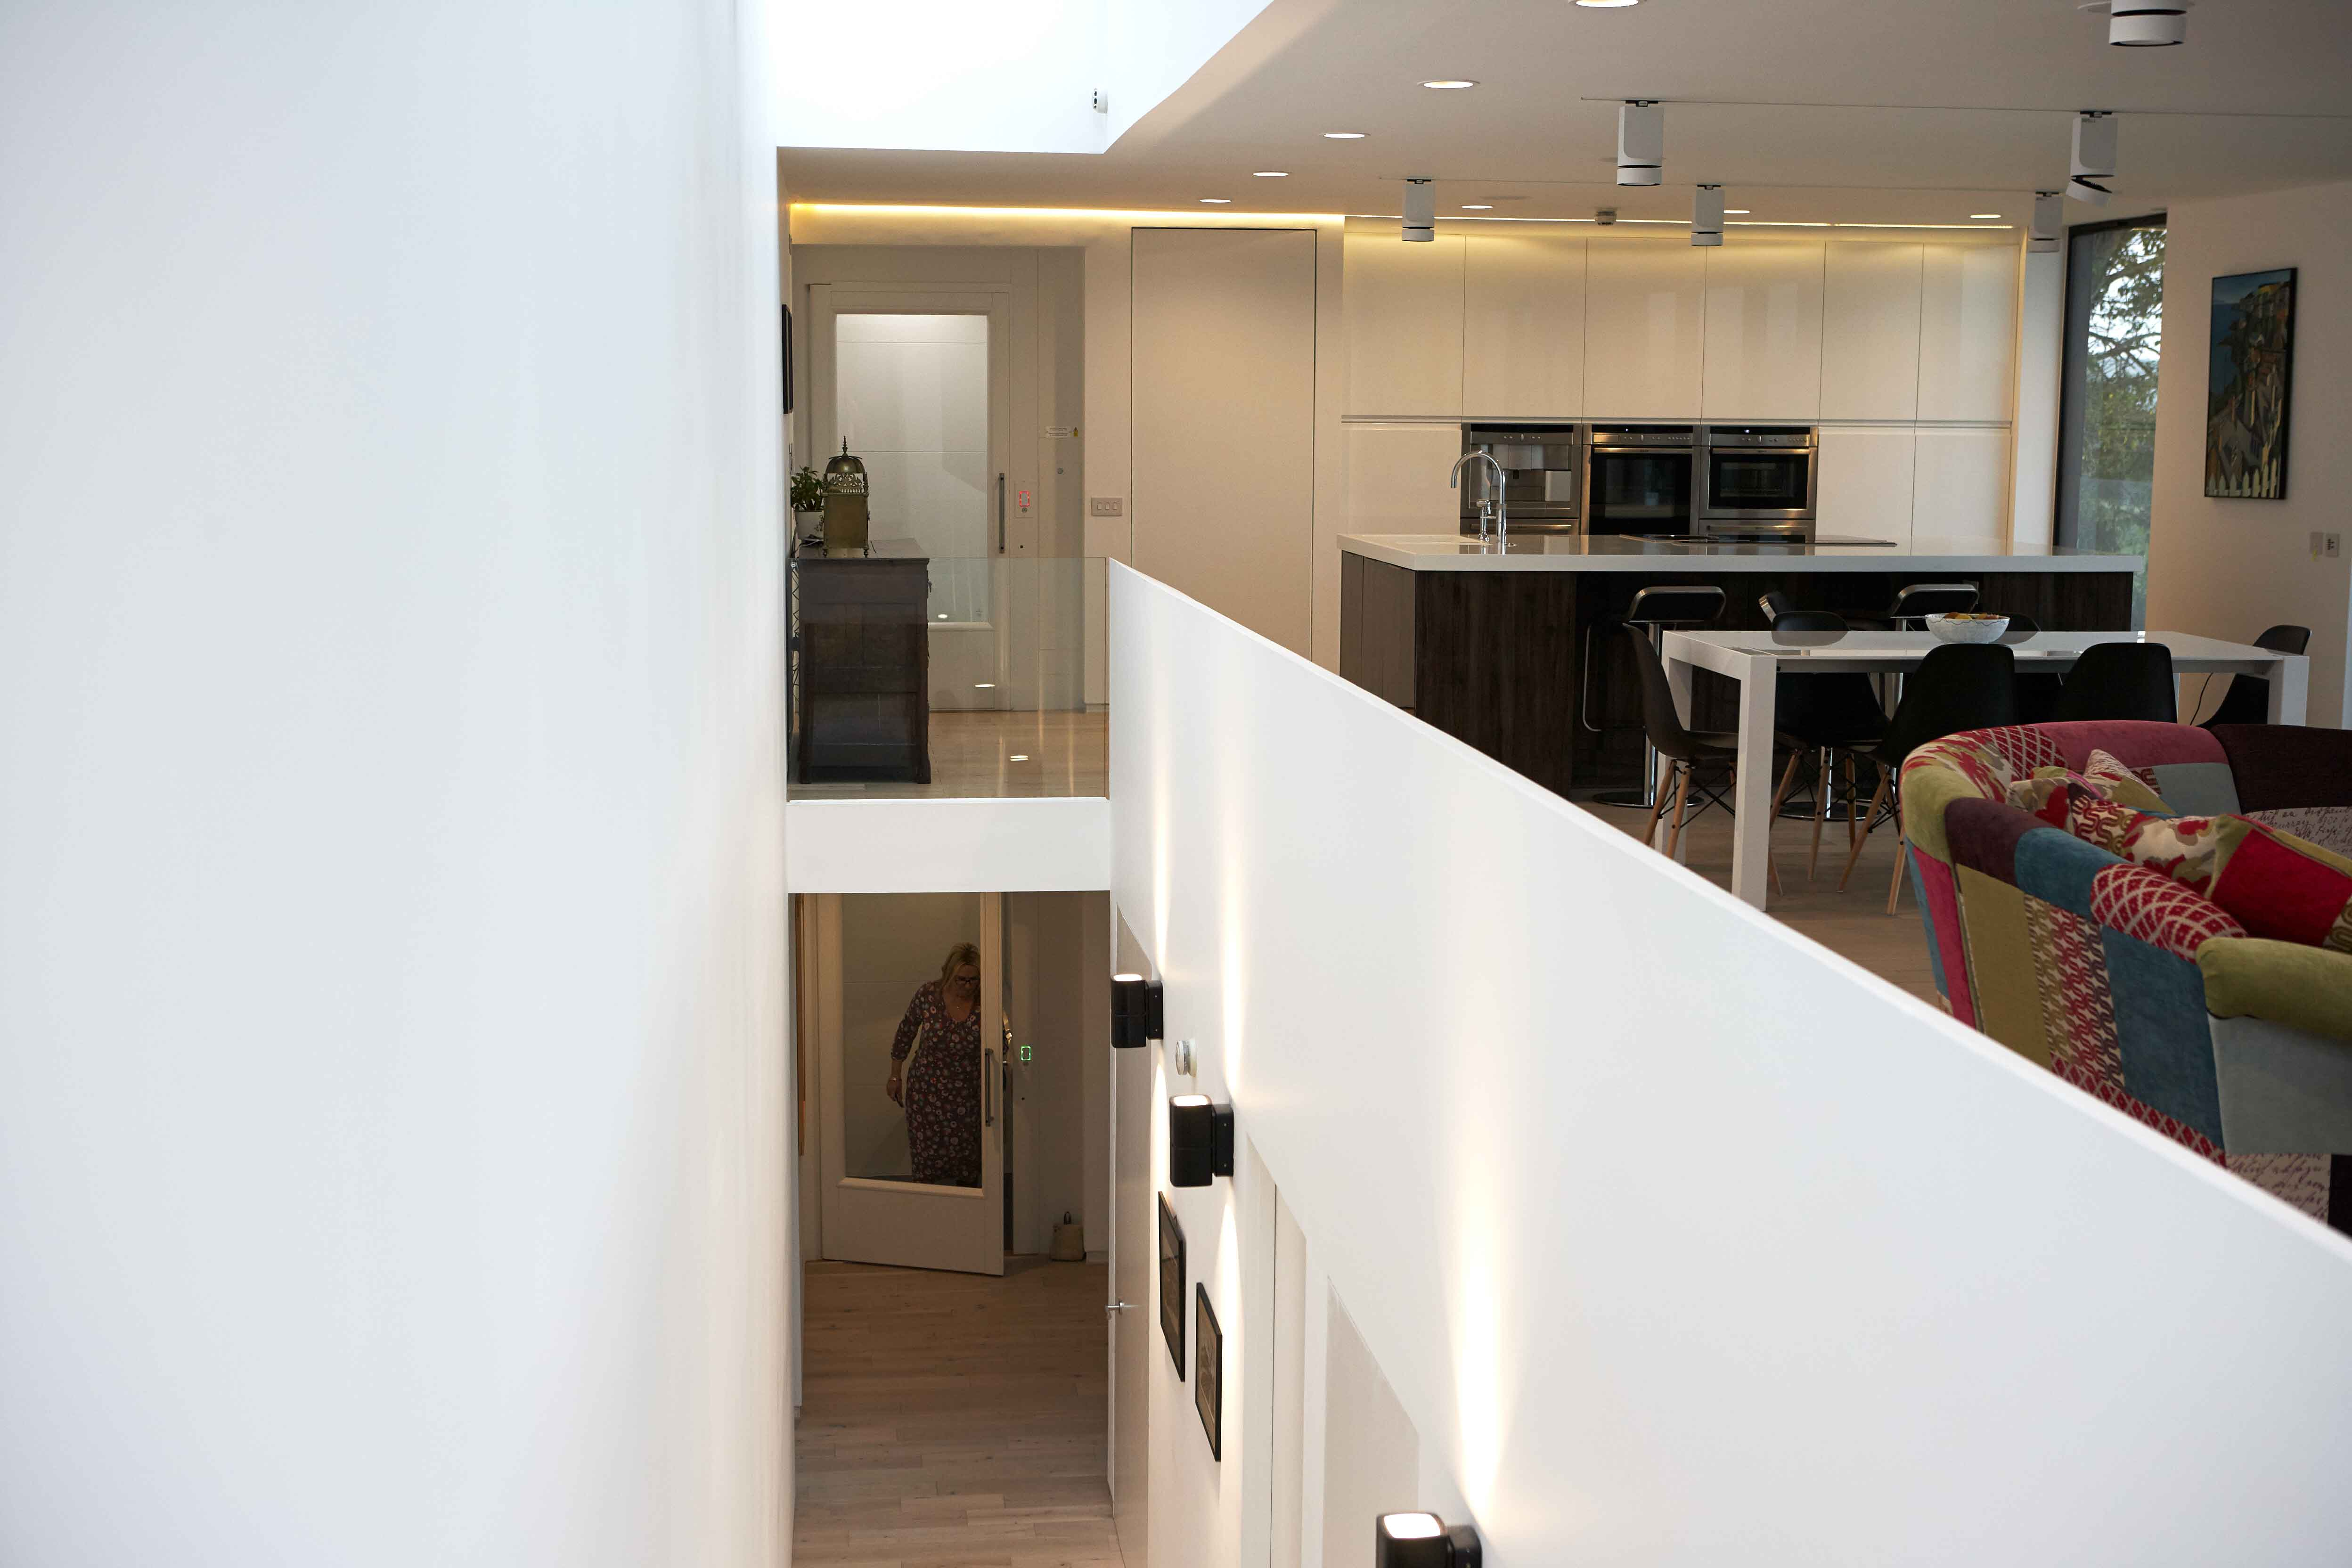 Home lift in kitchen